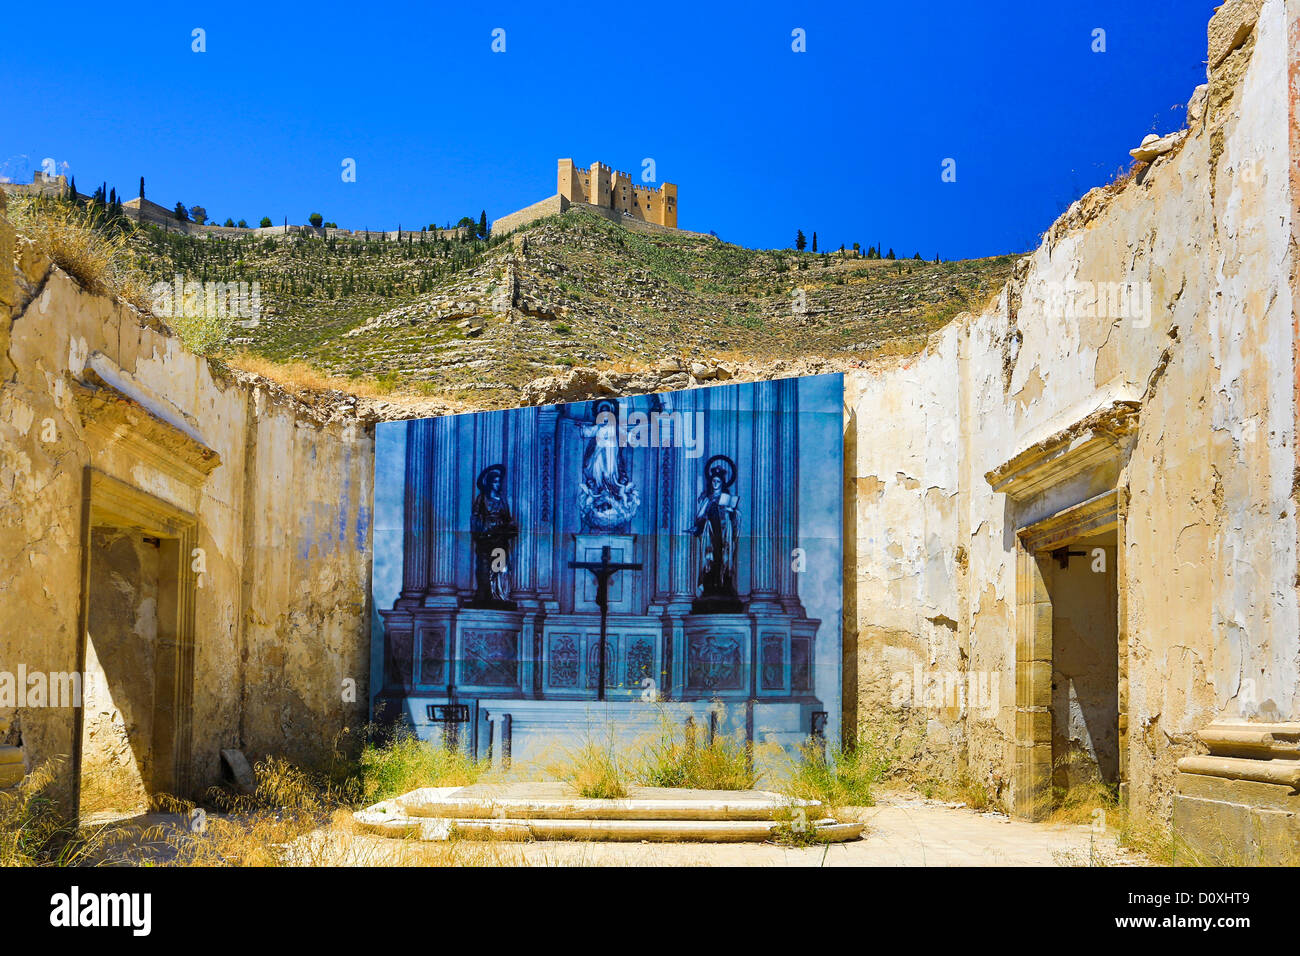 Spain, Europe, Zaragoza, Province, Mequinenza City, Church, Mequinenza, architecture, castle, church, destroyed, - Stock Image